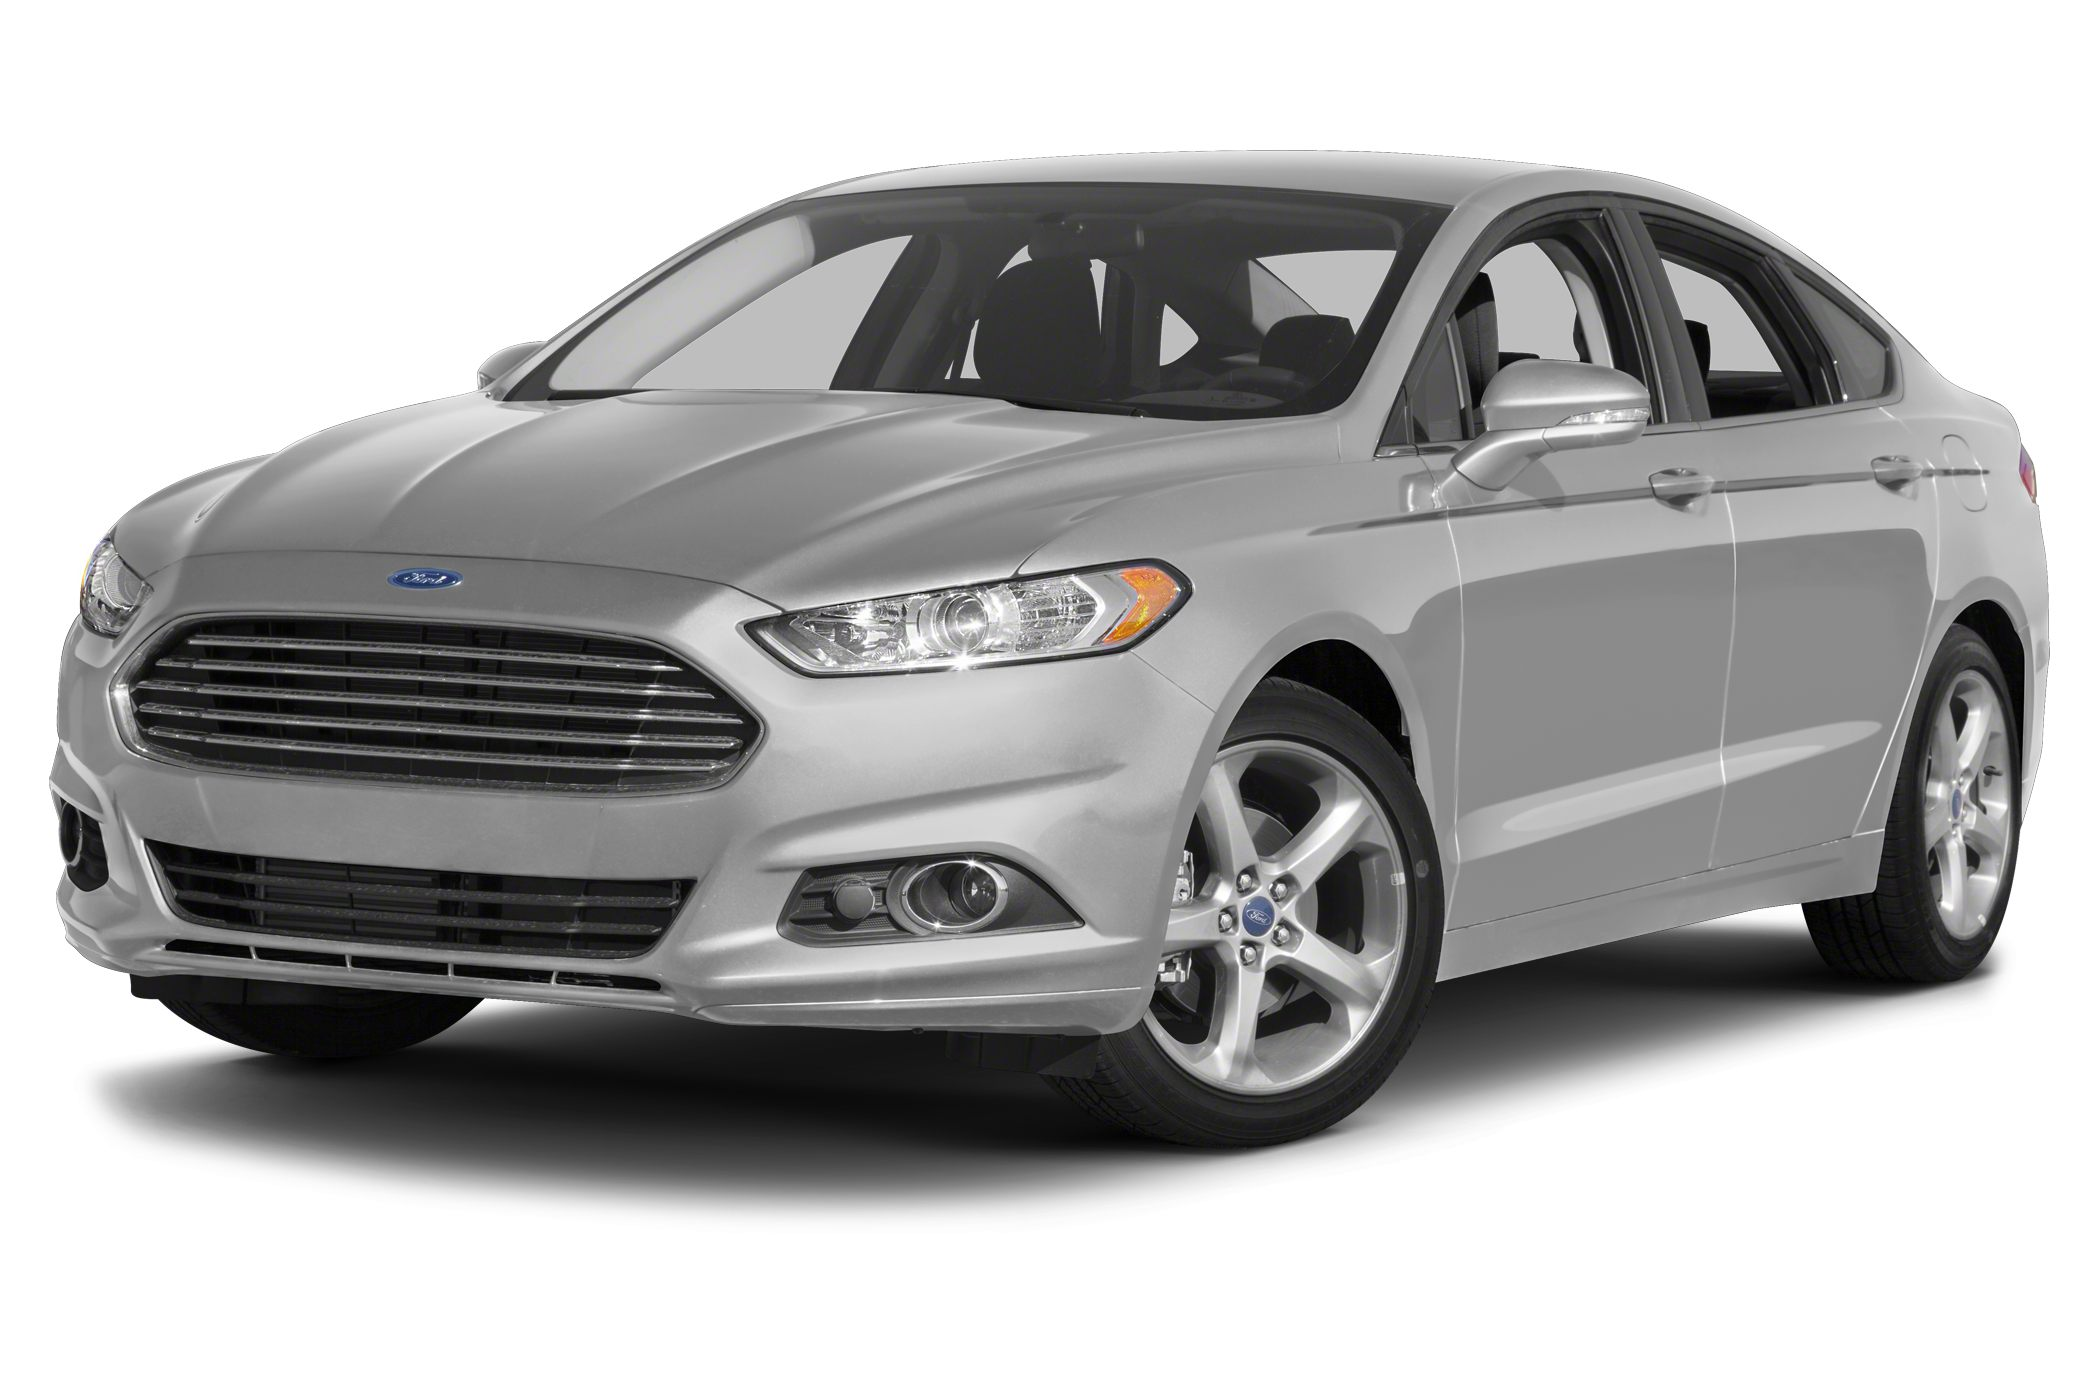 2013 Ford Fusion SE Sedan for sale in Malone for $19,000 with 19,900 miles.